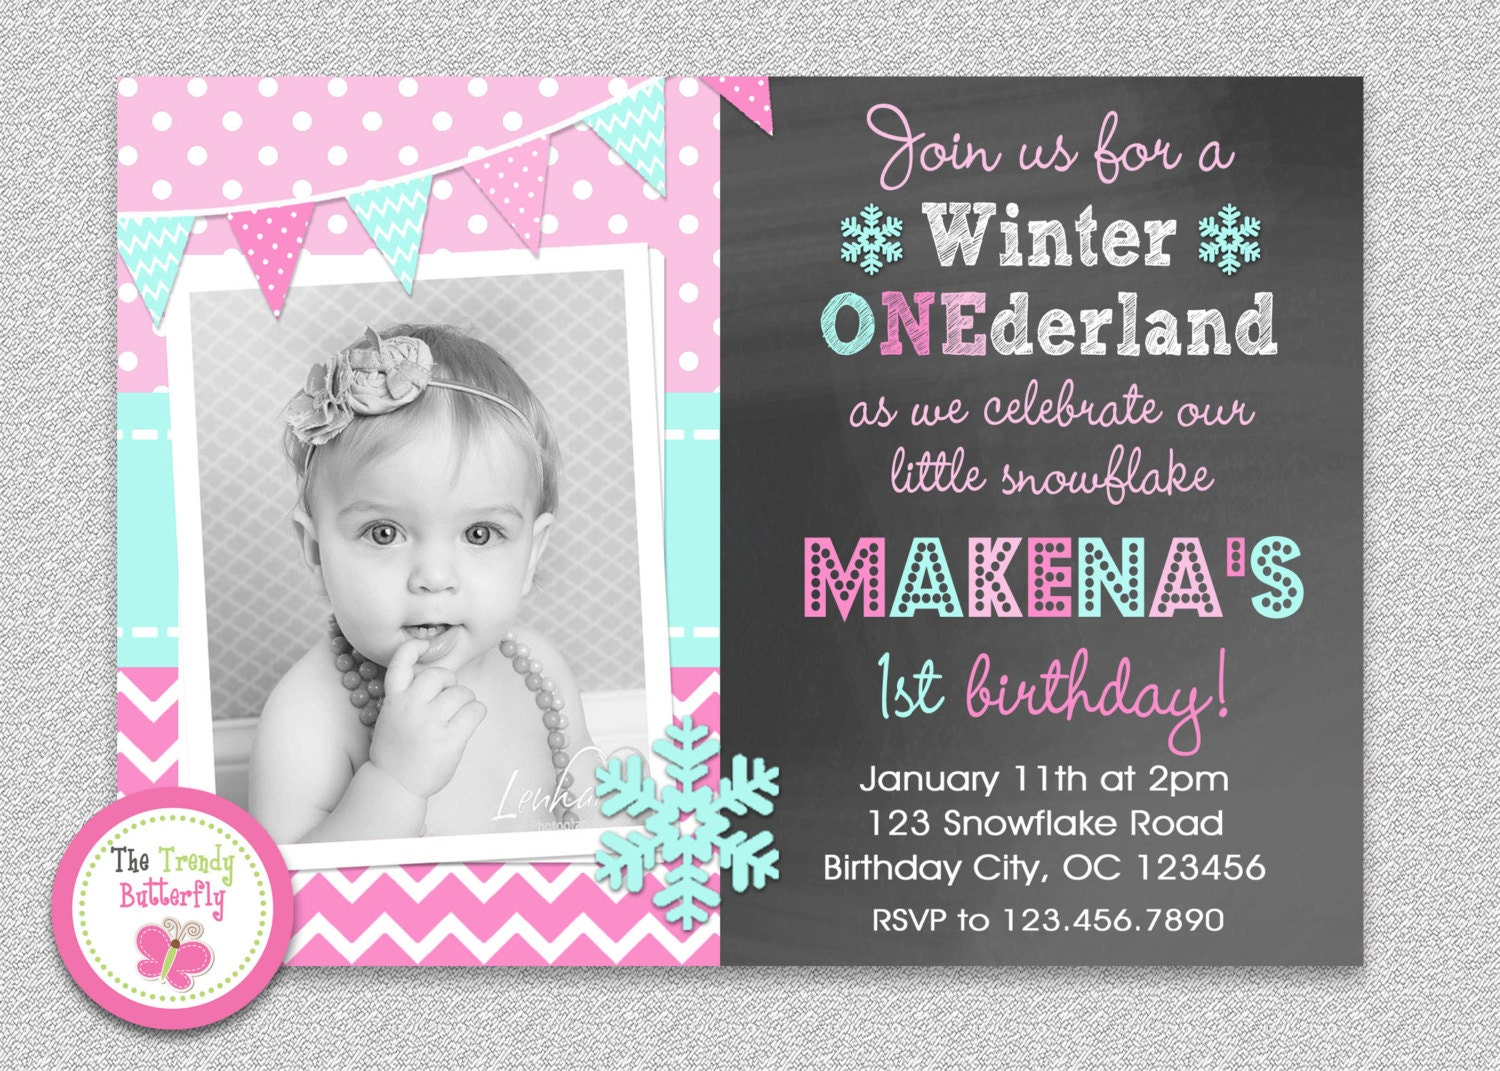 Winter Wonderland Birthday Invitations could be nice ideas for your invitation template